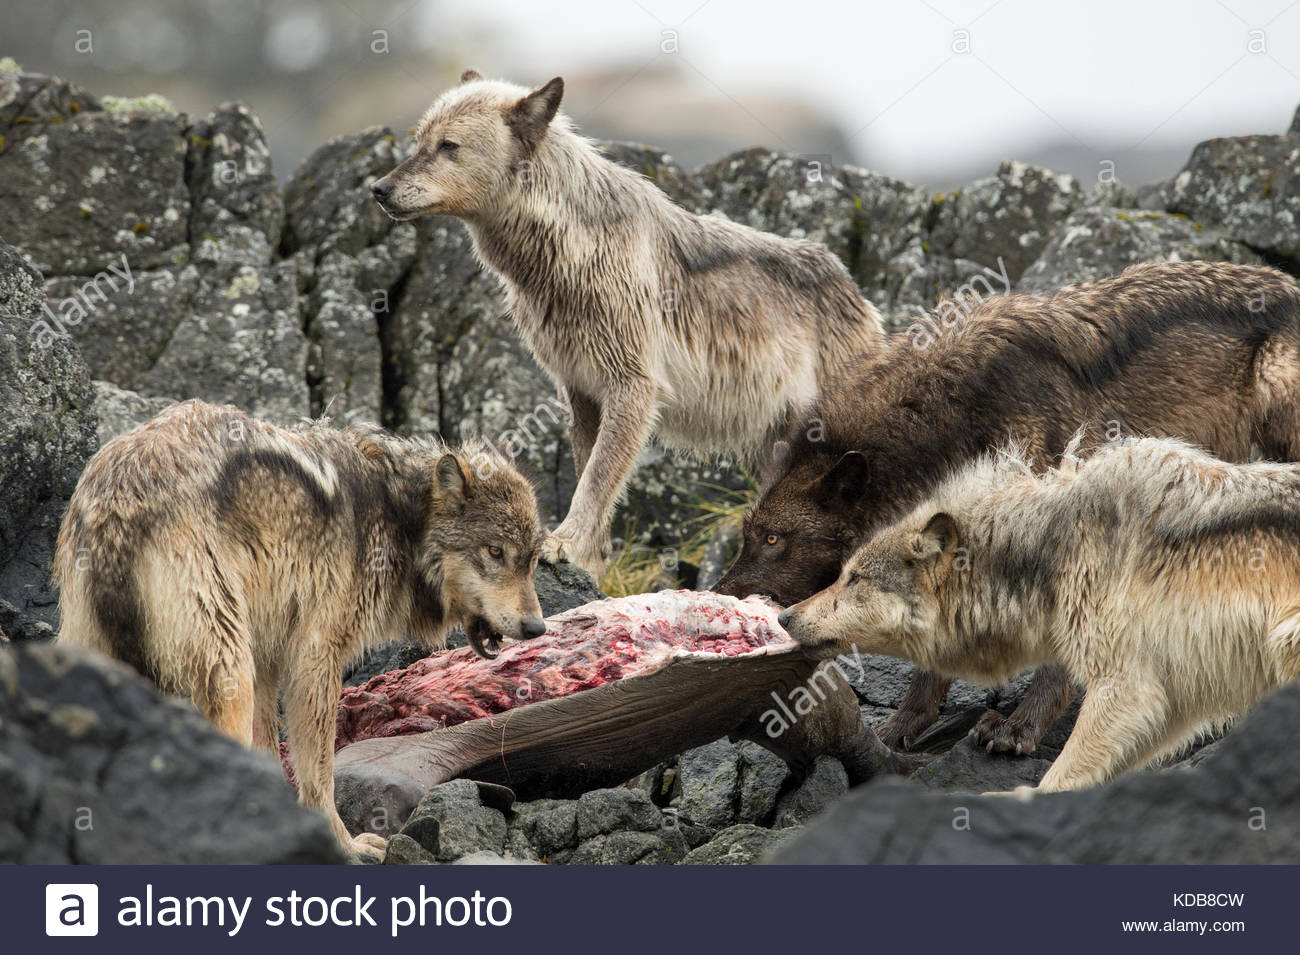 A pack of coastal wolves, Canis lupus, feeding on a sea lion carcass. - Stock Image